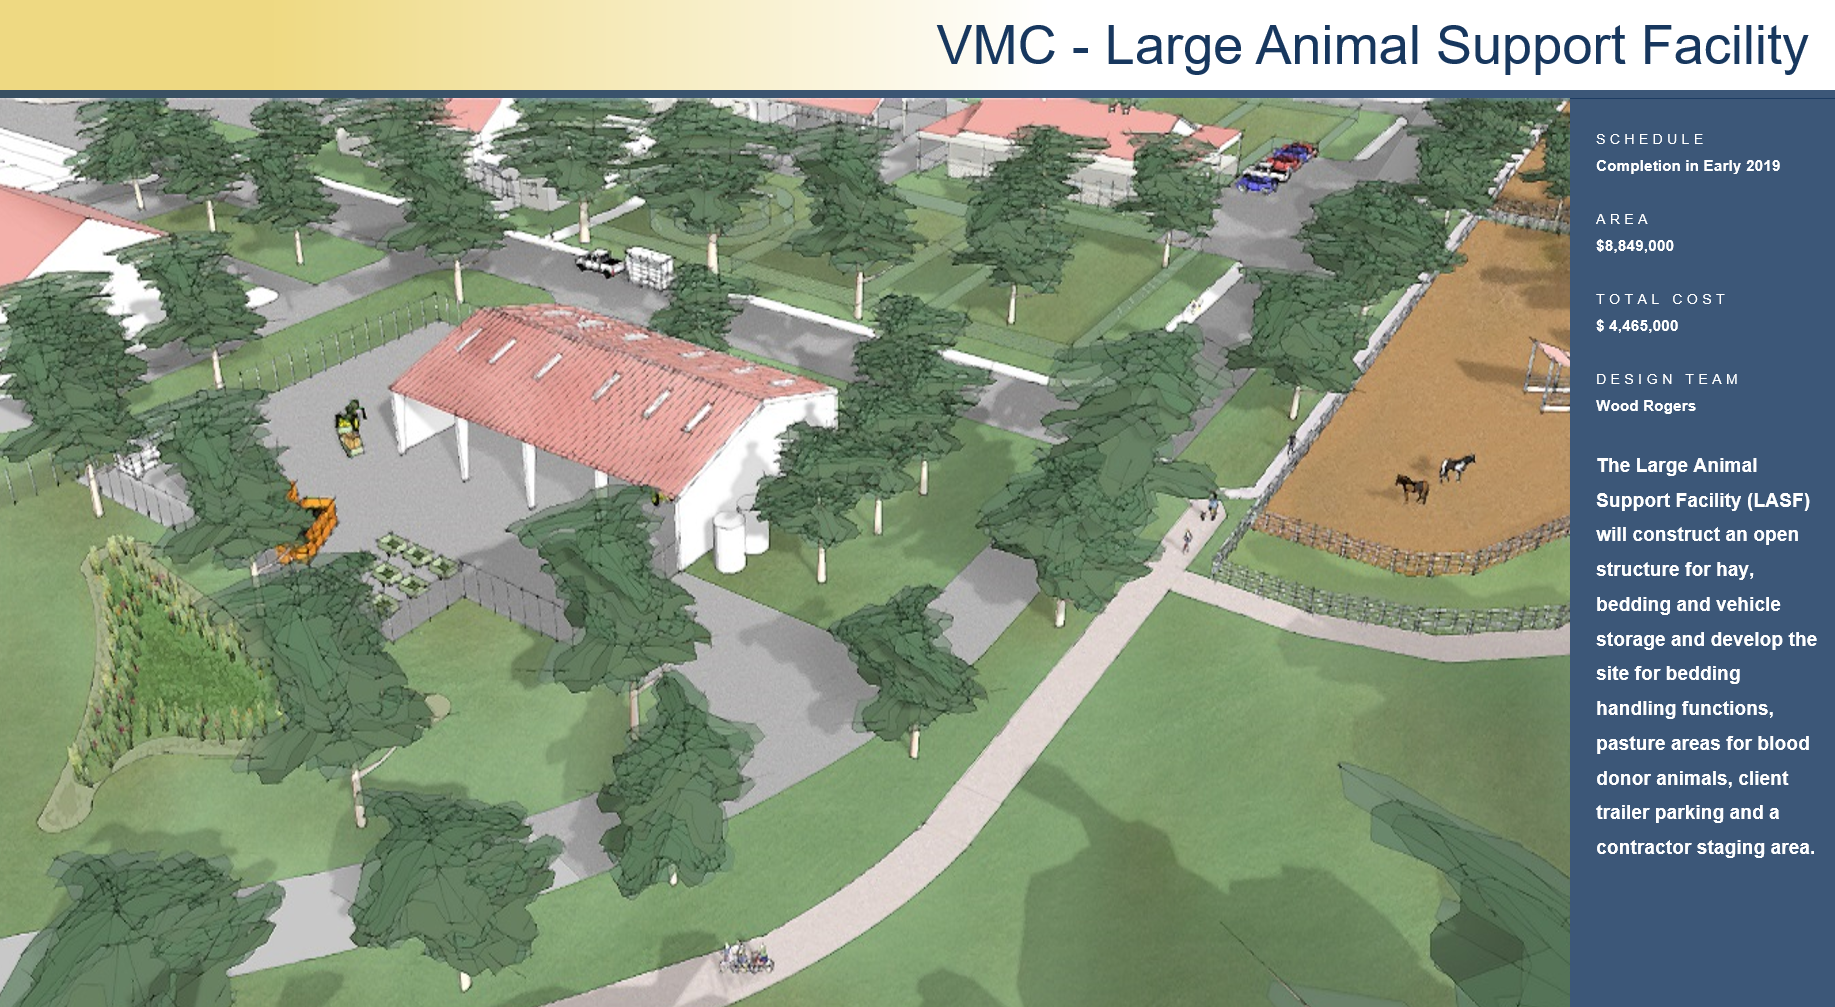 VMC Large Animal Support Facility